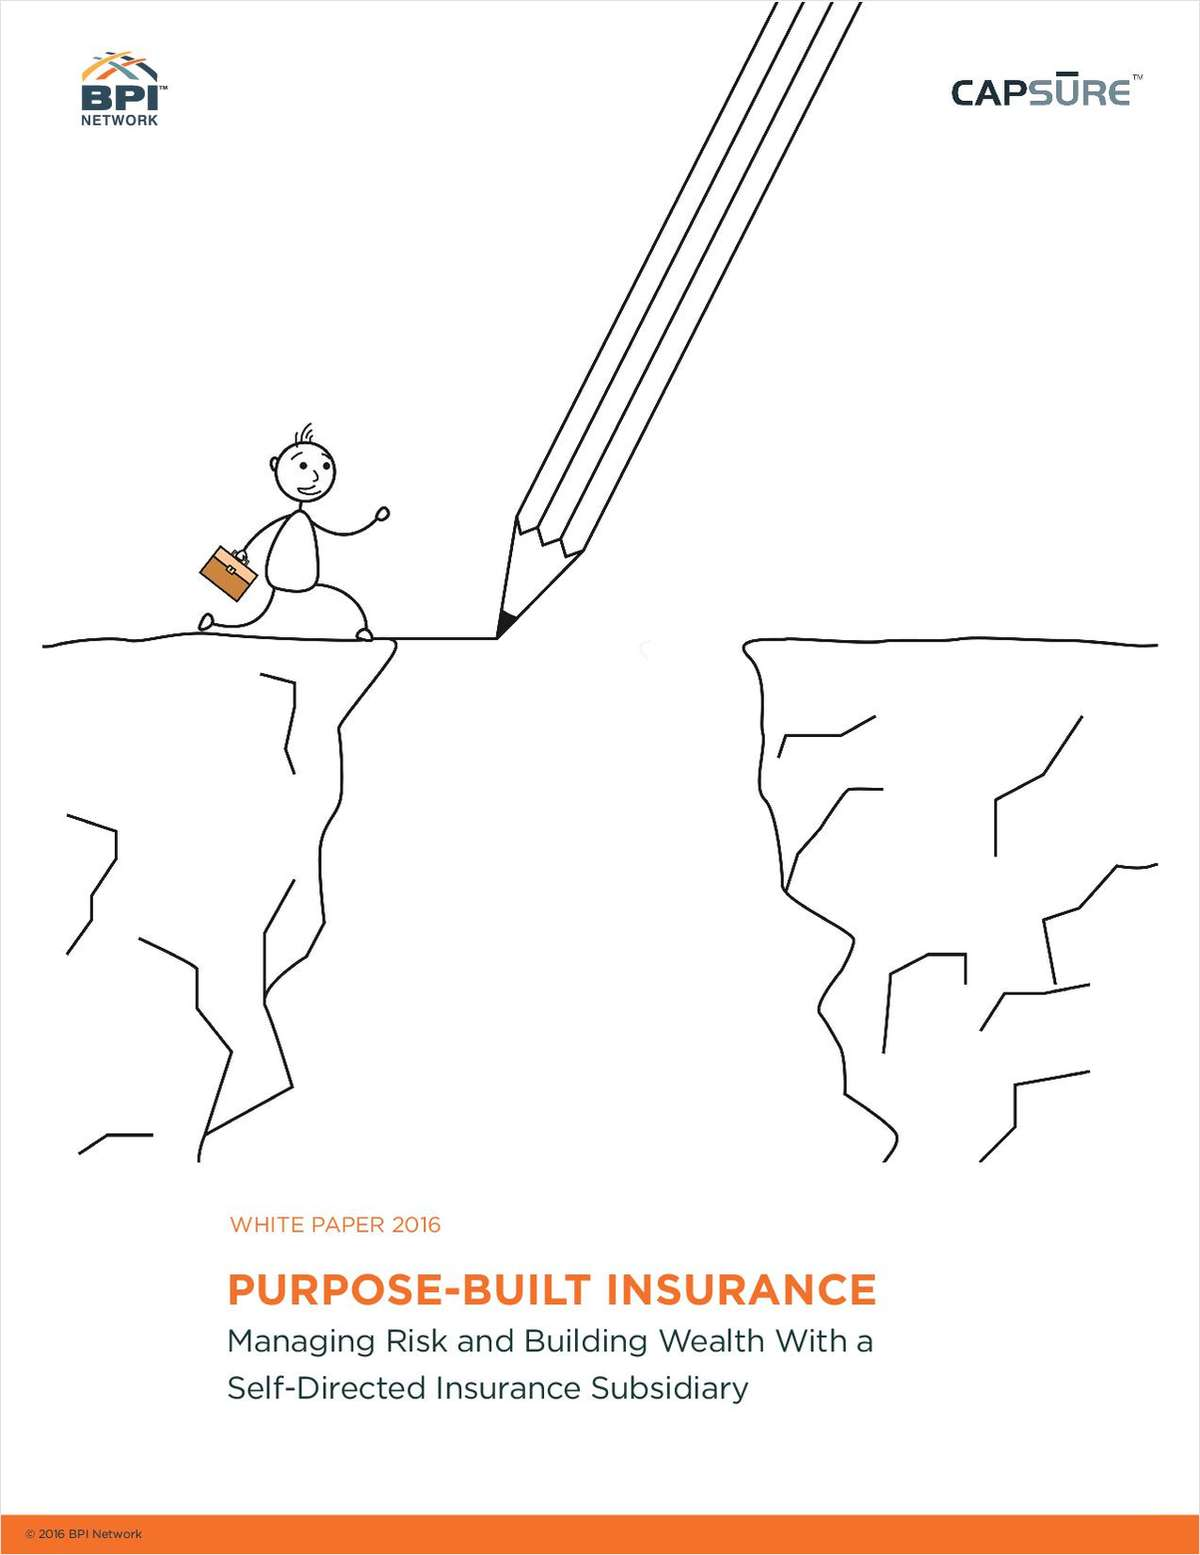 Mid-Sized Businesses Rethink Insurance and Risk